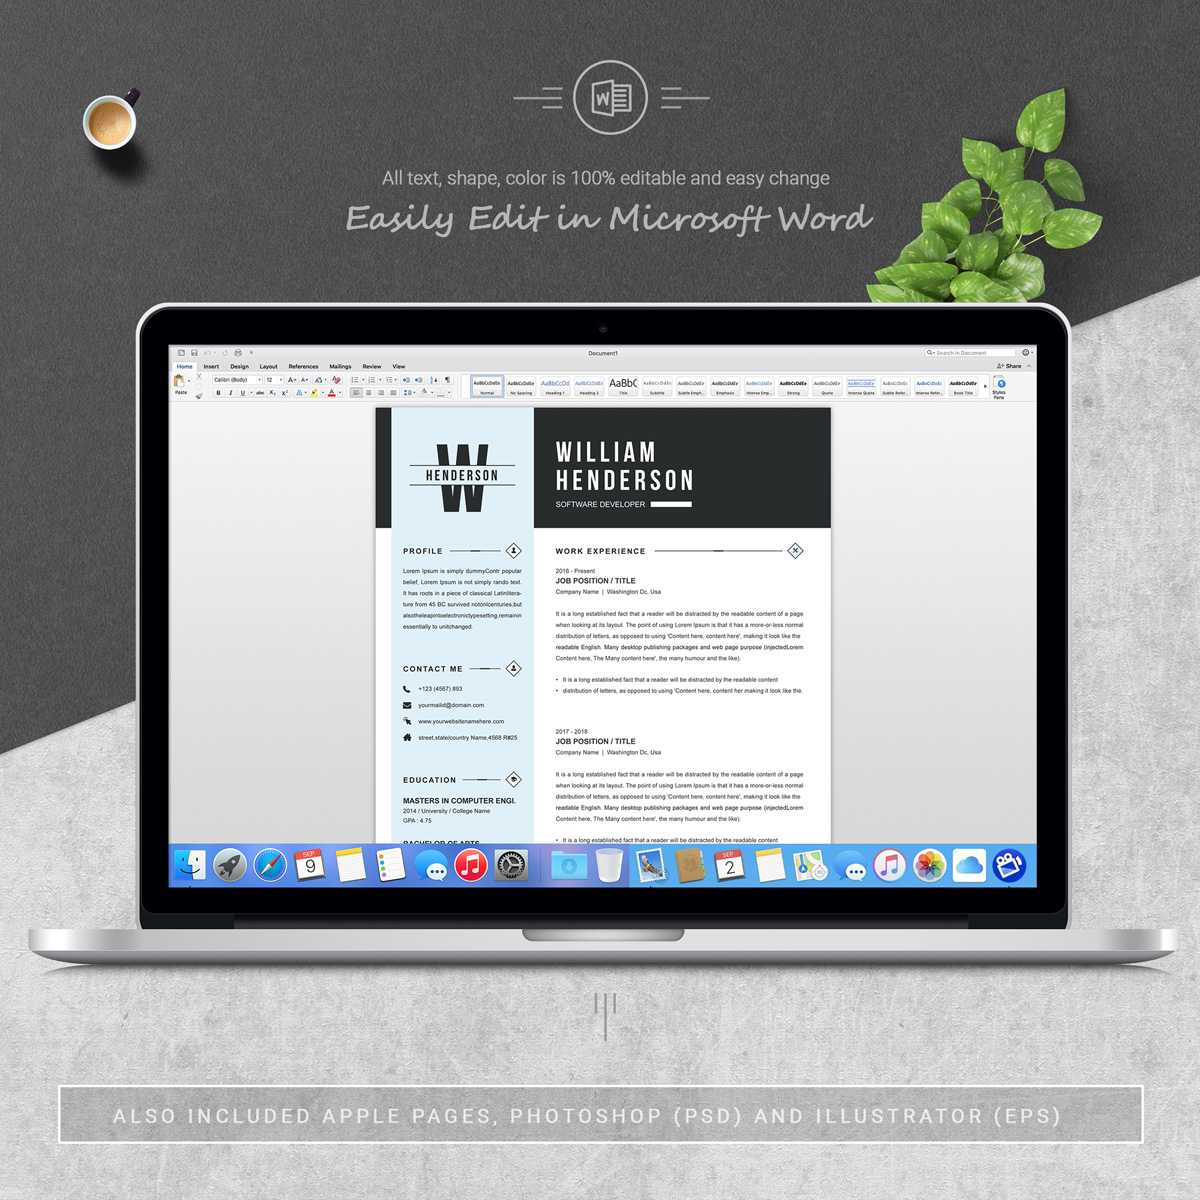 https://s3u.tmimgcdn.com/1860567-1553350388152_05_3-Pages-Free-Resume-MS-Word-File-Format-Design-Template.jpg